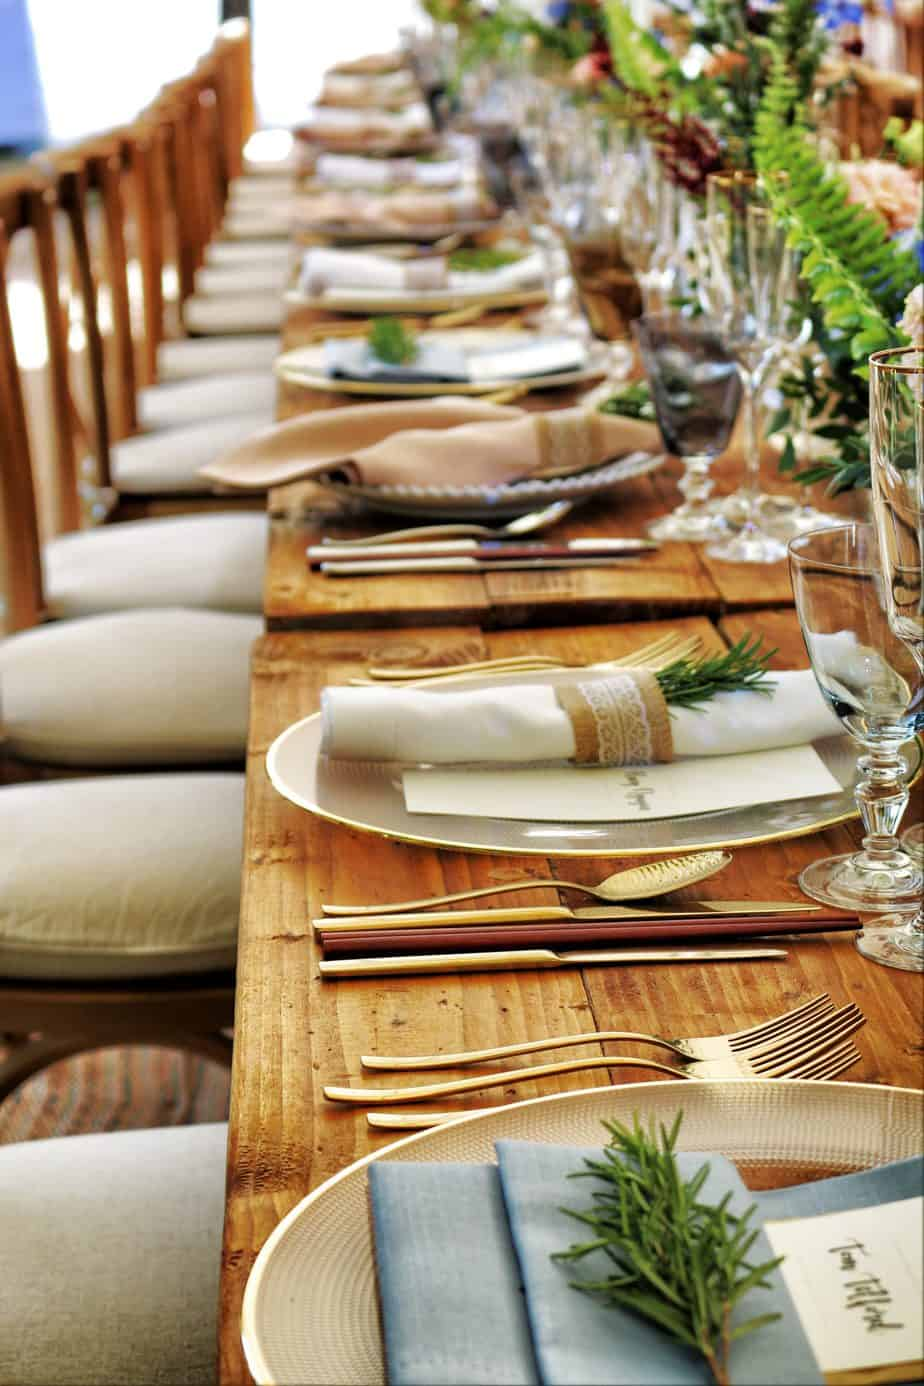 Close-up photo of dinnerware laid out on long dining table.